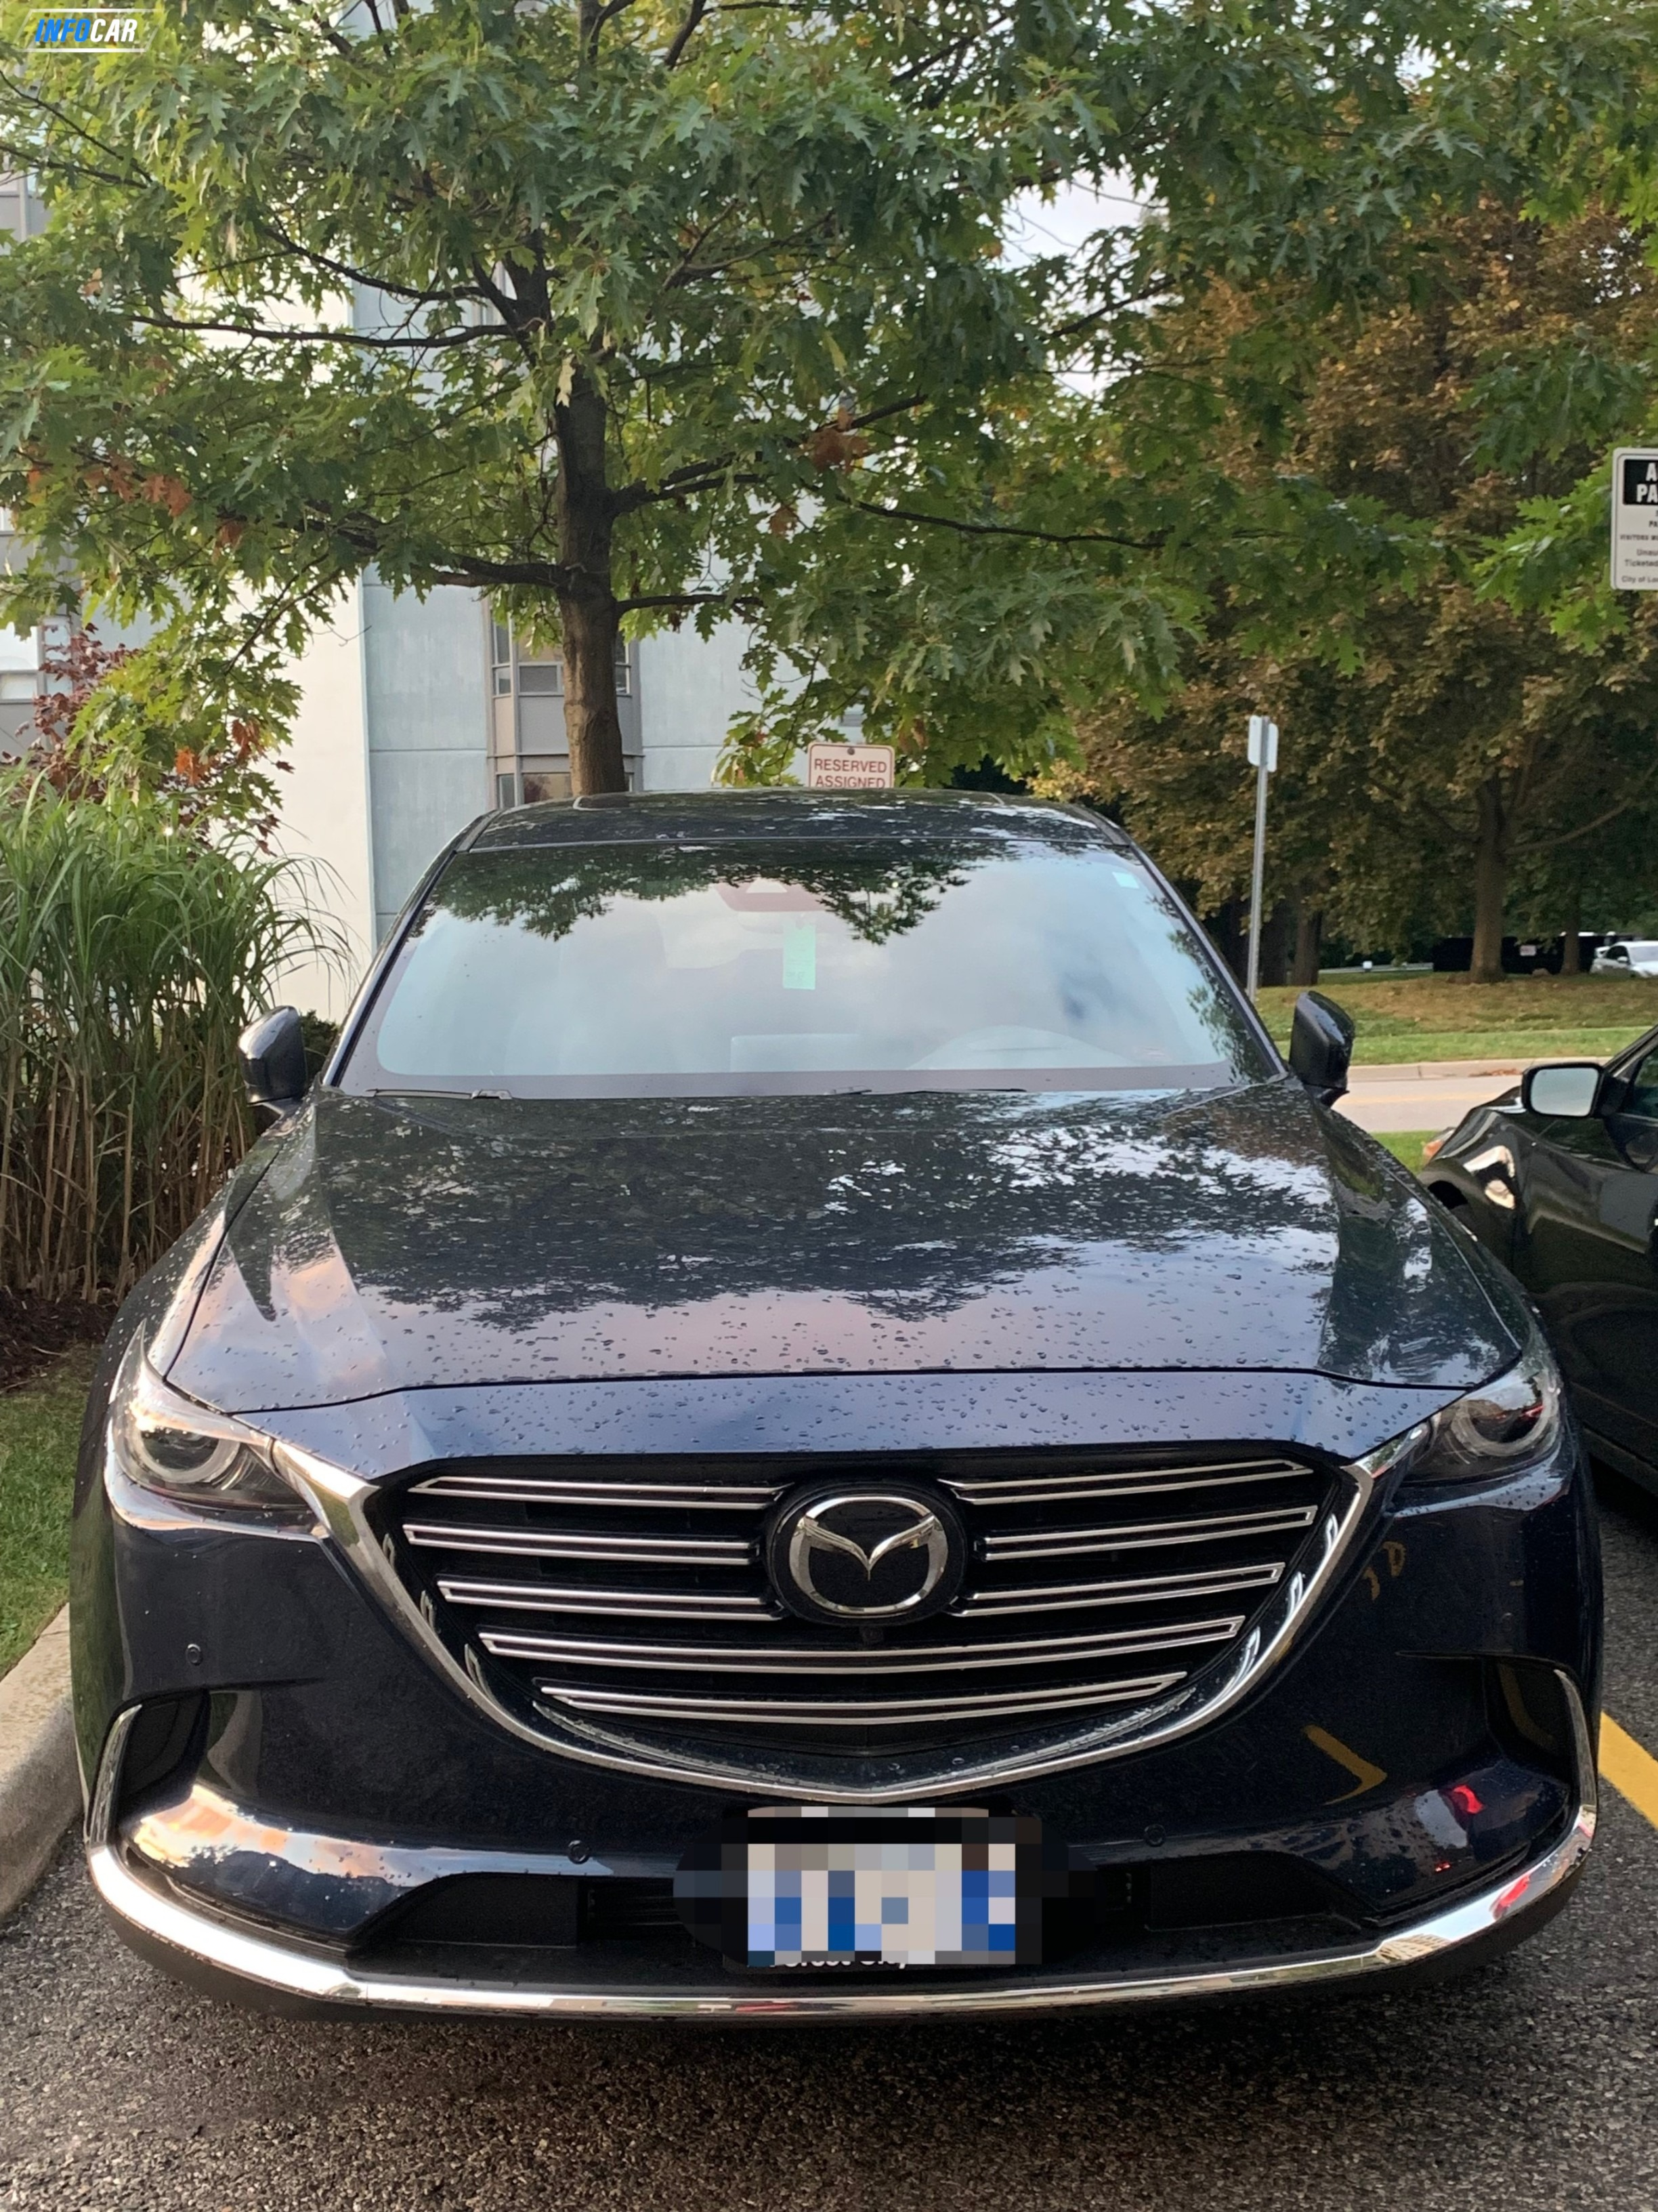 2020 Mazda CX-9 GT - INFOCAR - Toronto's Most Comprehensive New and Used Auto Trading Platform